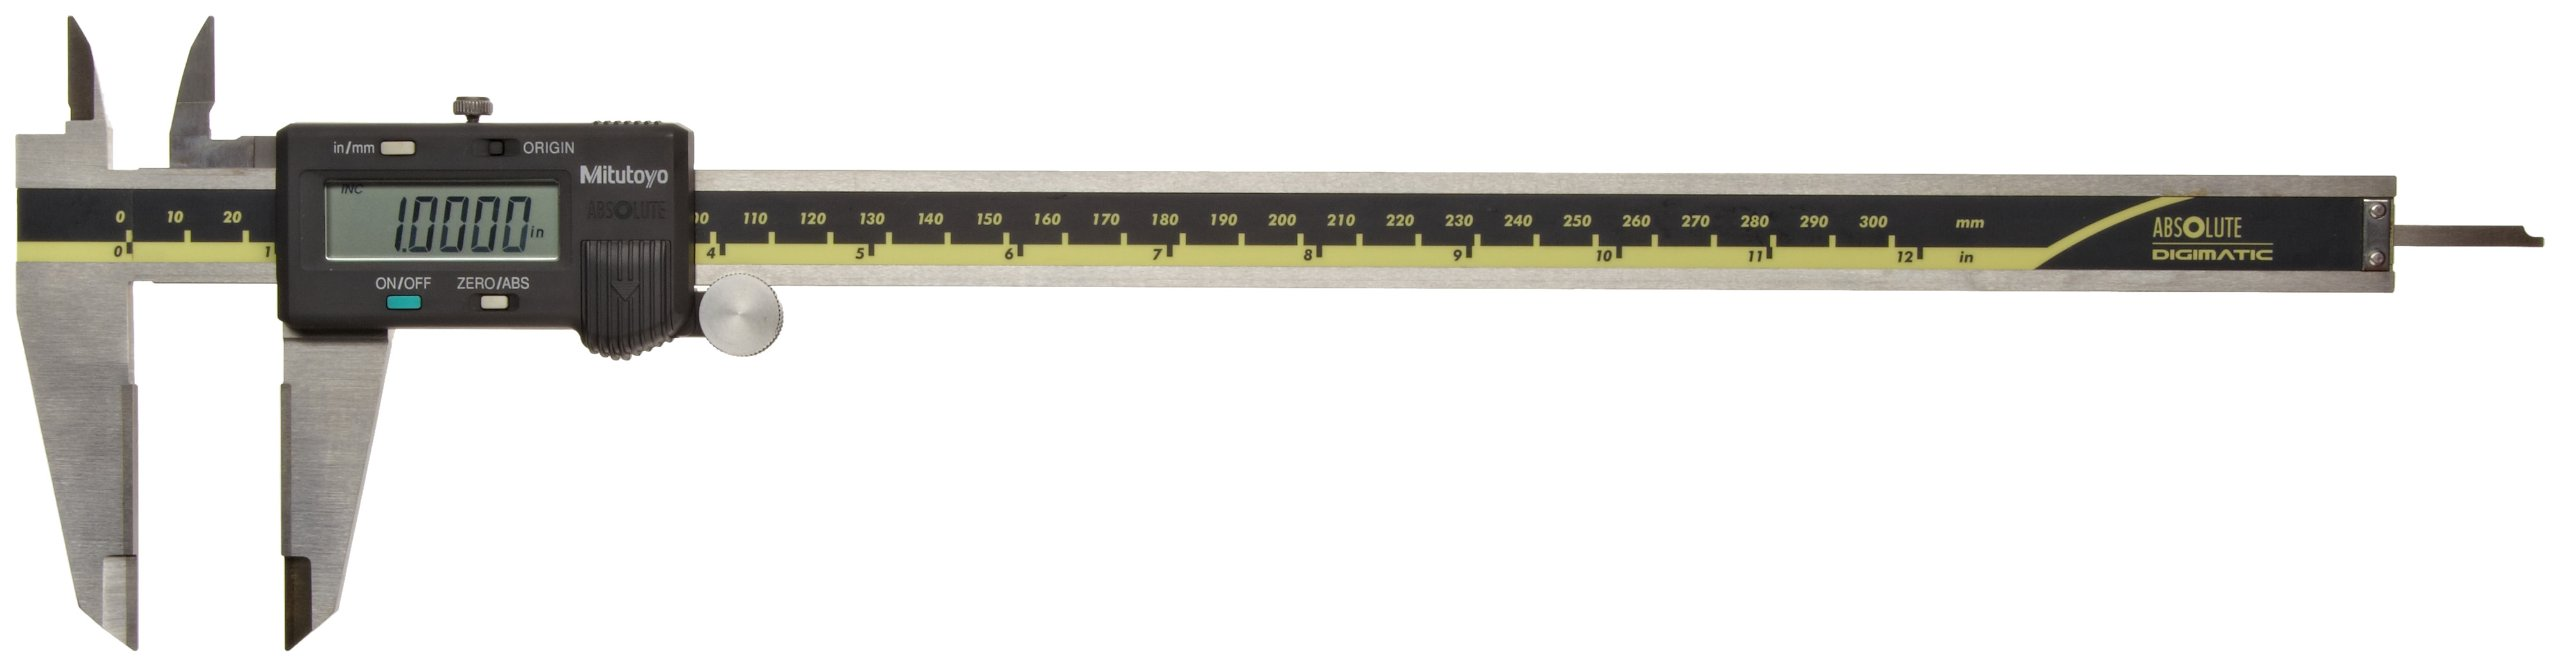 Mitutoyo 500-166 Absolute Digital Caliper, Stainless Steel, Battery Powered, Inch/Metric, 0-12'' Range, +/-0.0015'' Accuracy, 0.0005'' Resolution